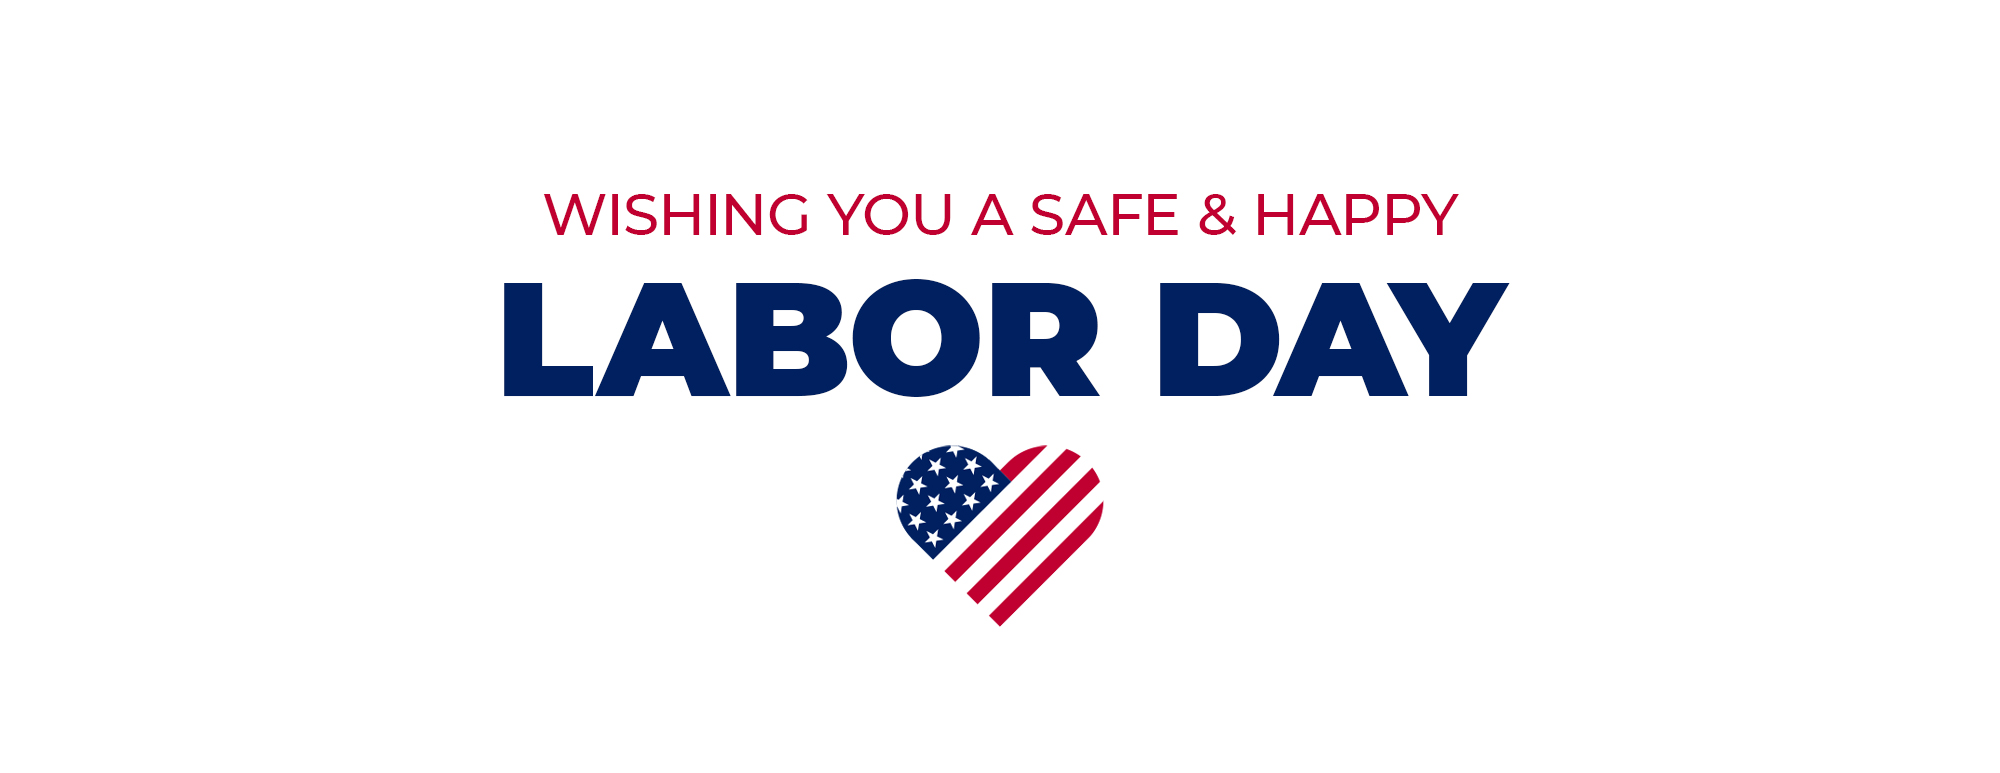 Wishing you a safe & happy labor day.